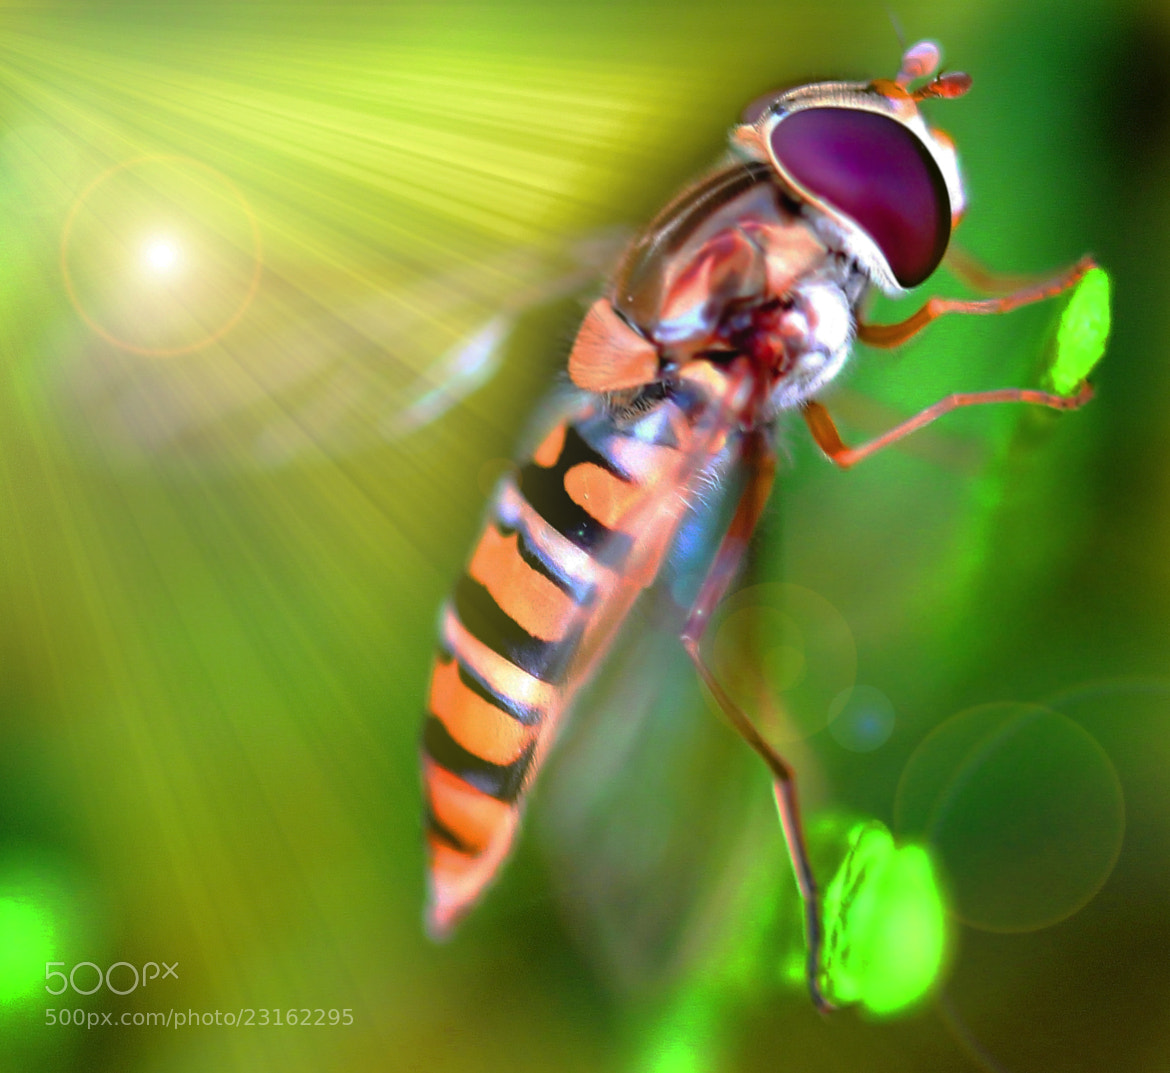 Photograph fly in the sun by Johannes Bauer on 500px